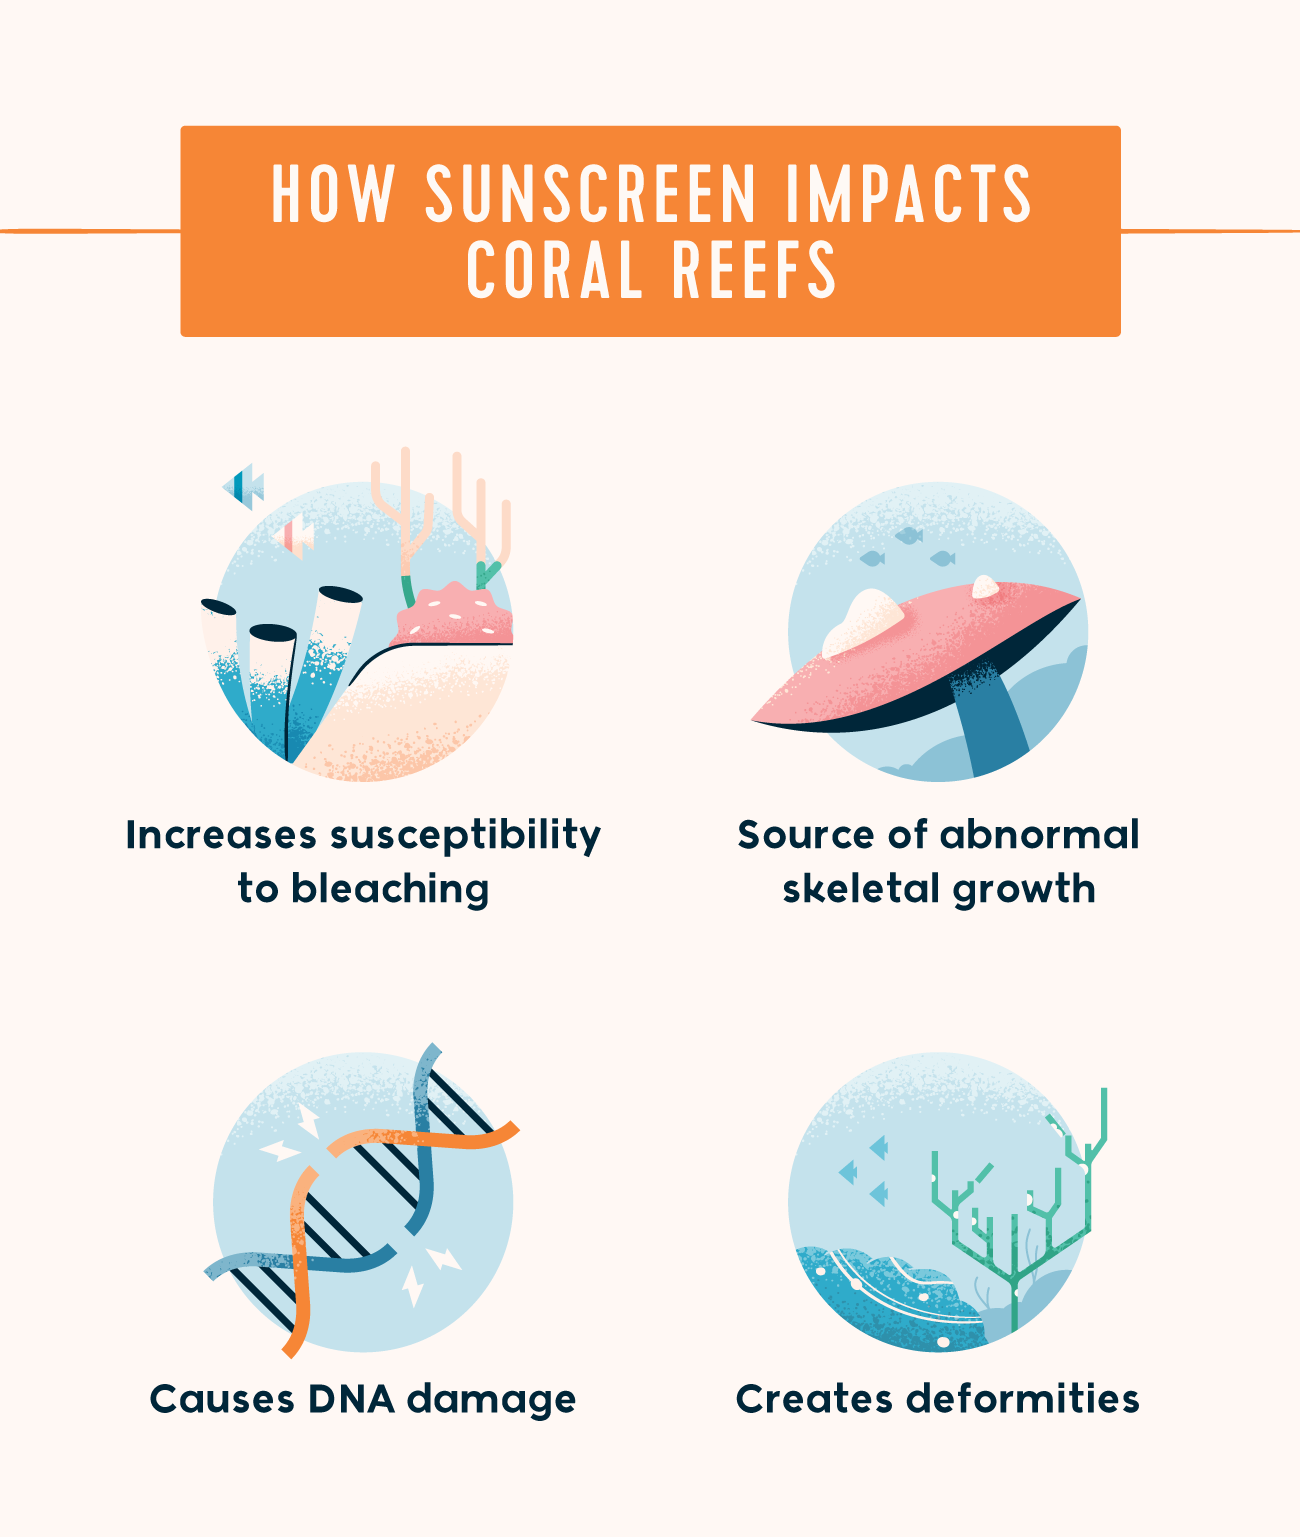 how sunscreen impacts coral reefs